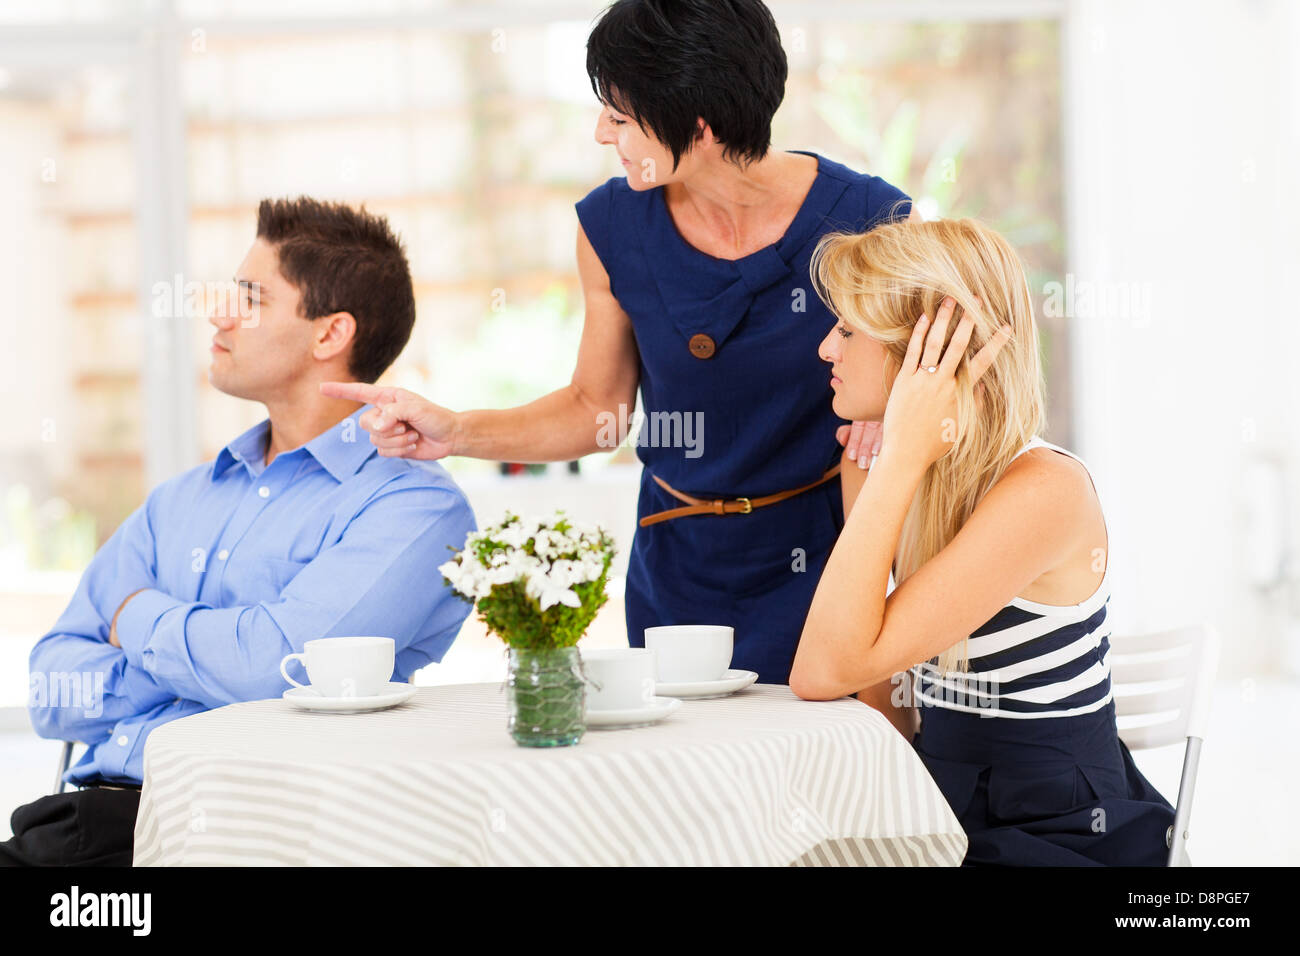 mother pointing finger at son-in-law as she took daughter's side when couple fighting - Stock Image